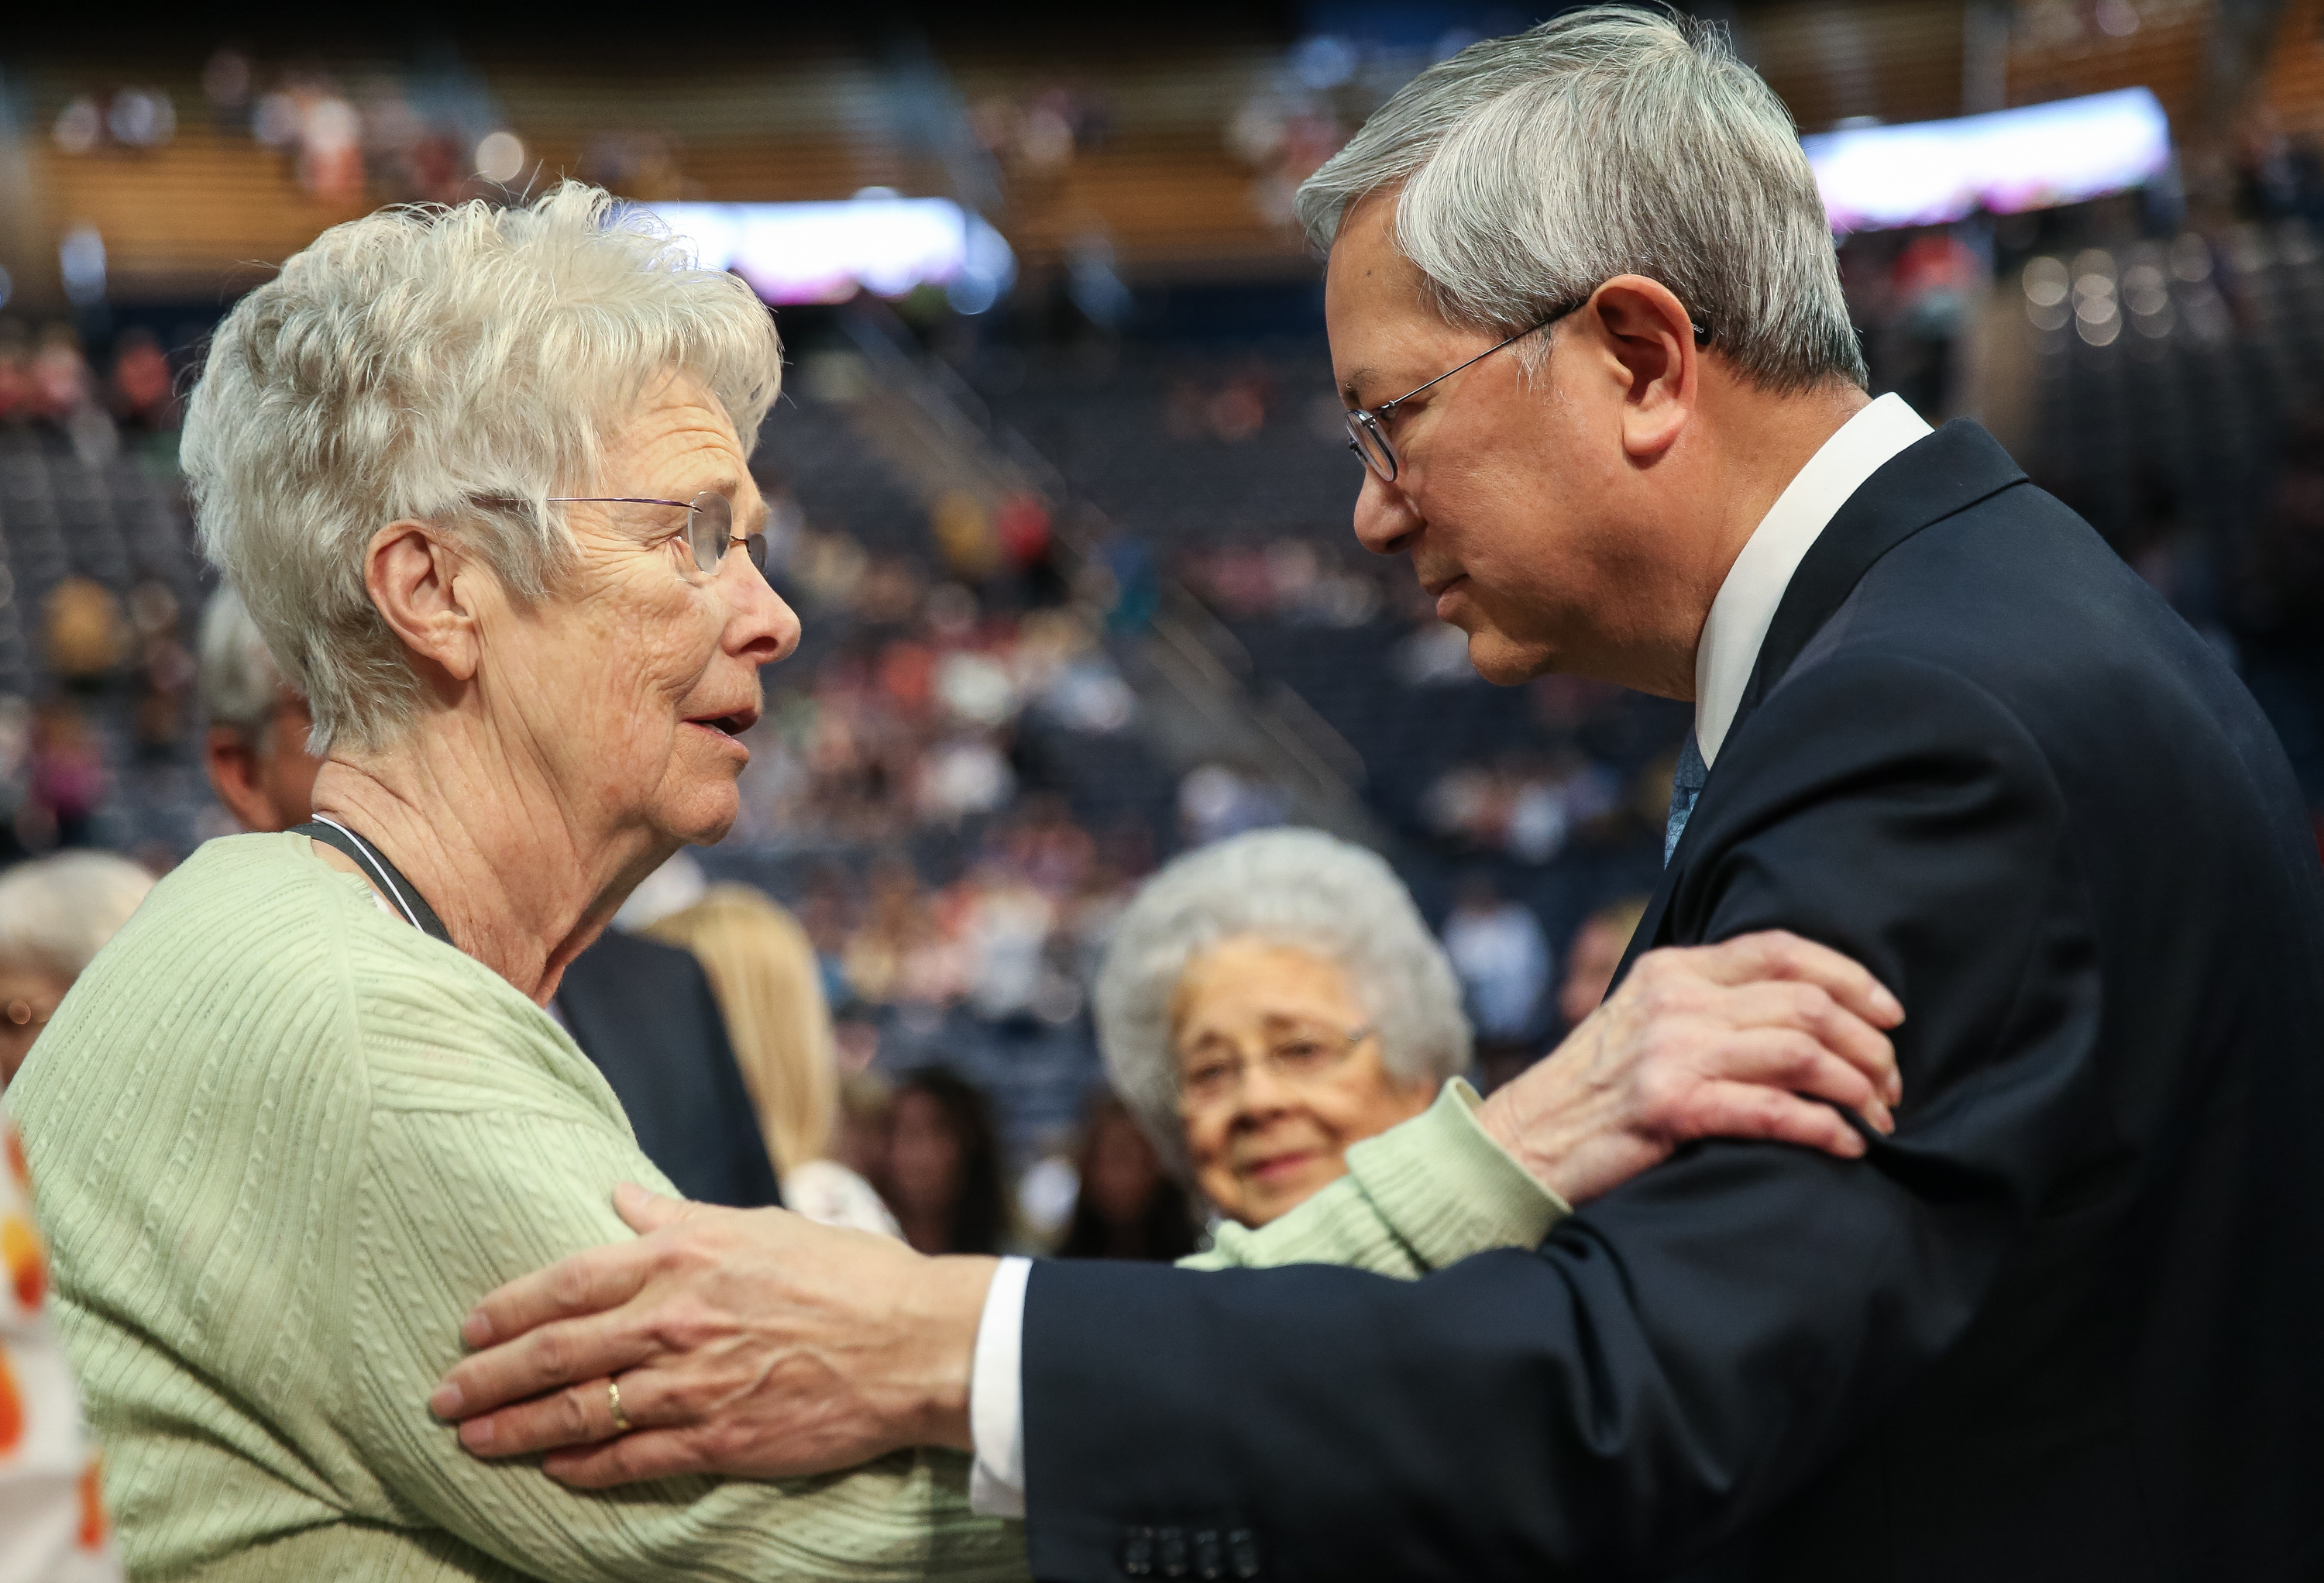 Elder Gerrit W. Gong, of the Quorum of the Twelve Apostles of the LDS Church, greets Ann Madsen, of Provo, after Gong spoke at the BYU Women's Conference at the Marriott Center in Provo on Friday, May 4, 2018.